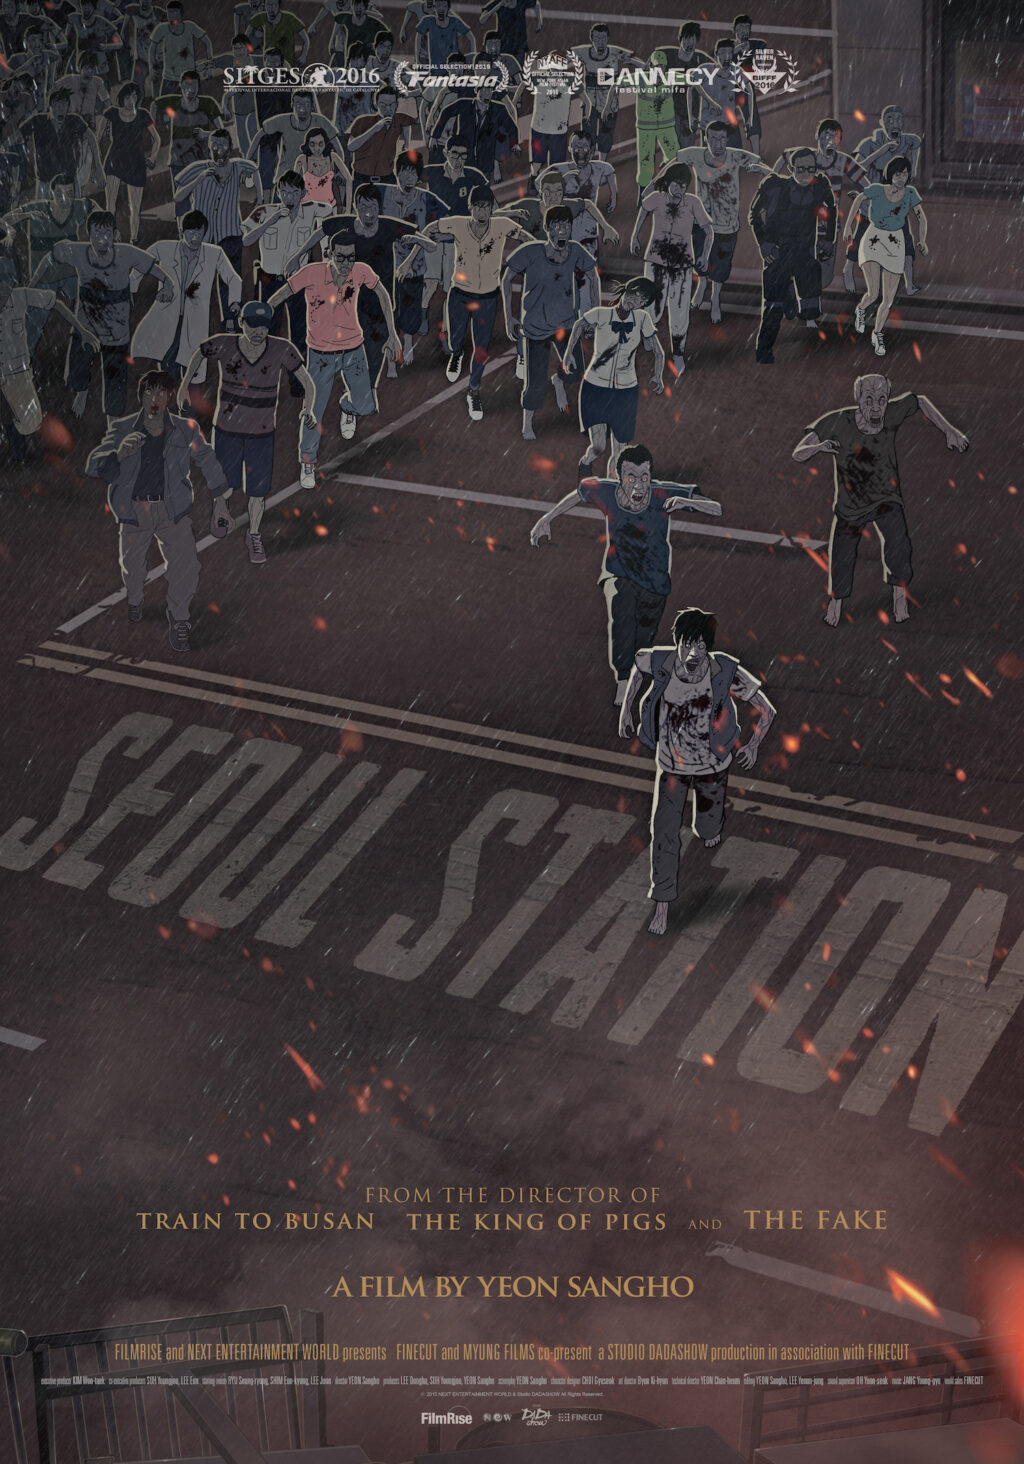 SEOUL STATION Intl poster 1024x1464 - Seoul Station, the Animated Prequel to Train to Busan, Coming to iTunes Next Week